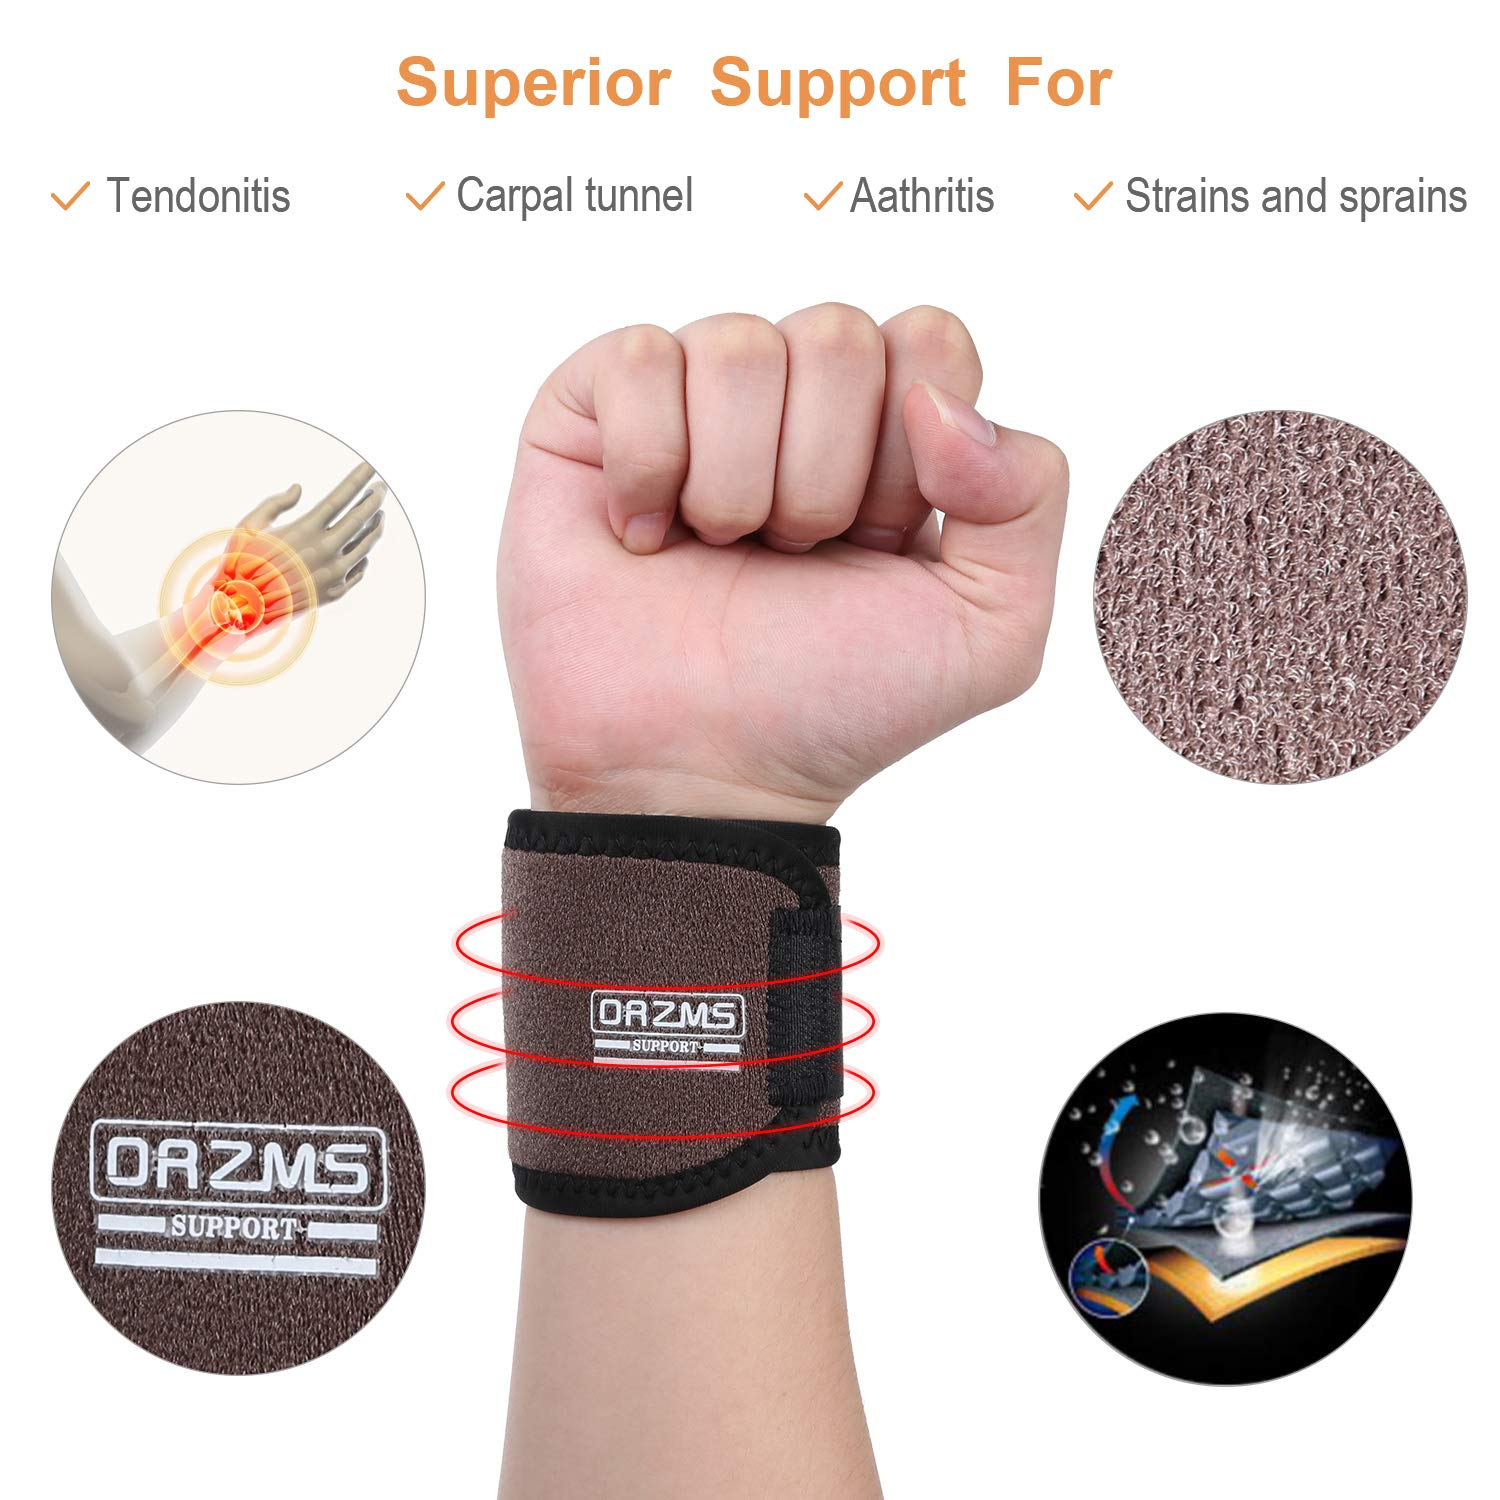 Comfortable Soft Wrist Support Brace 2Pack of Wrist Support//Wrist Straps//Wraps Support//Hand Support//Carpal Tunnel Wrist Braces for Arthritis and Tendinitis,Fit for Left,Right Hand,Men,Women Black